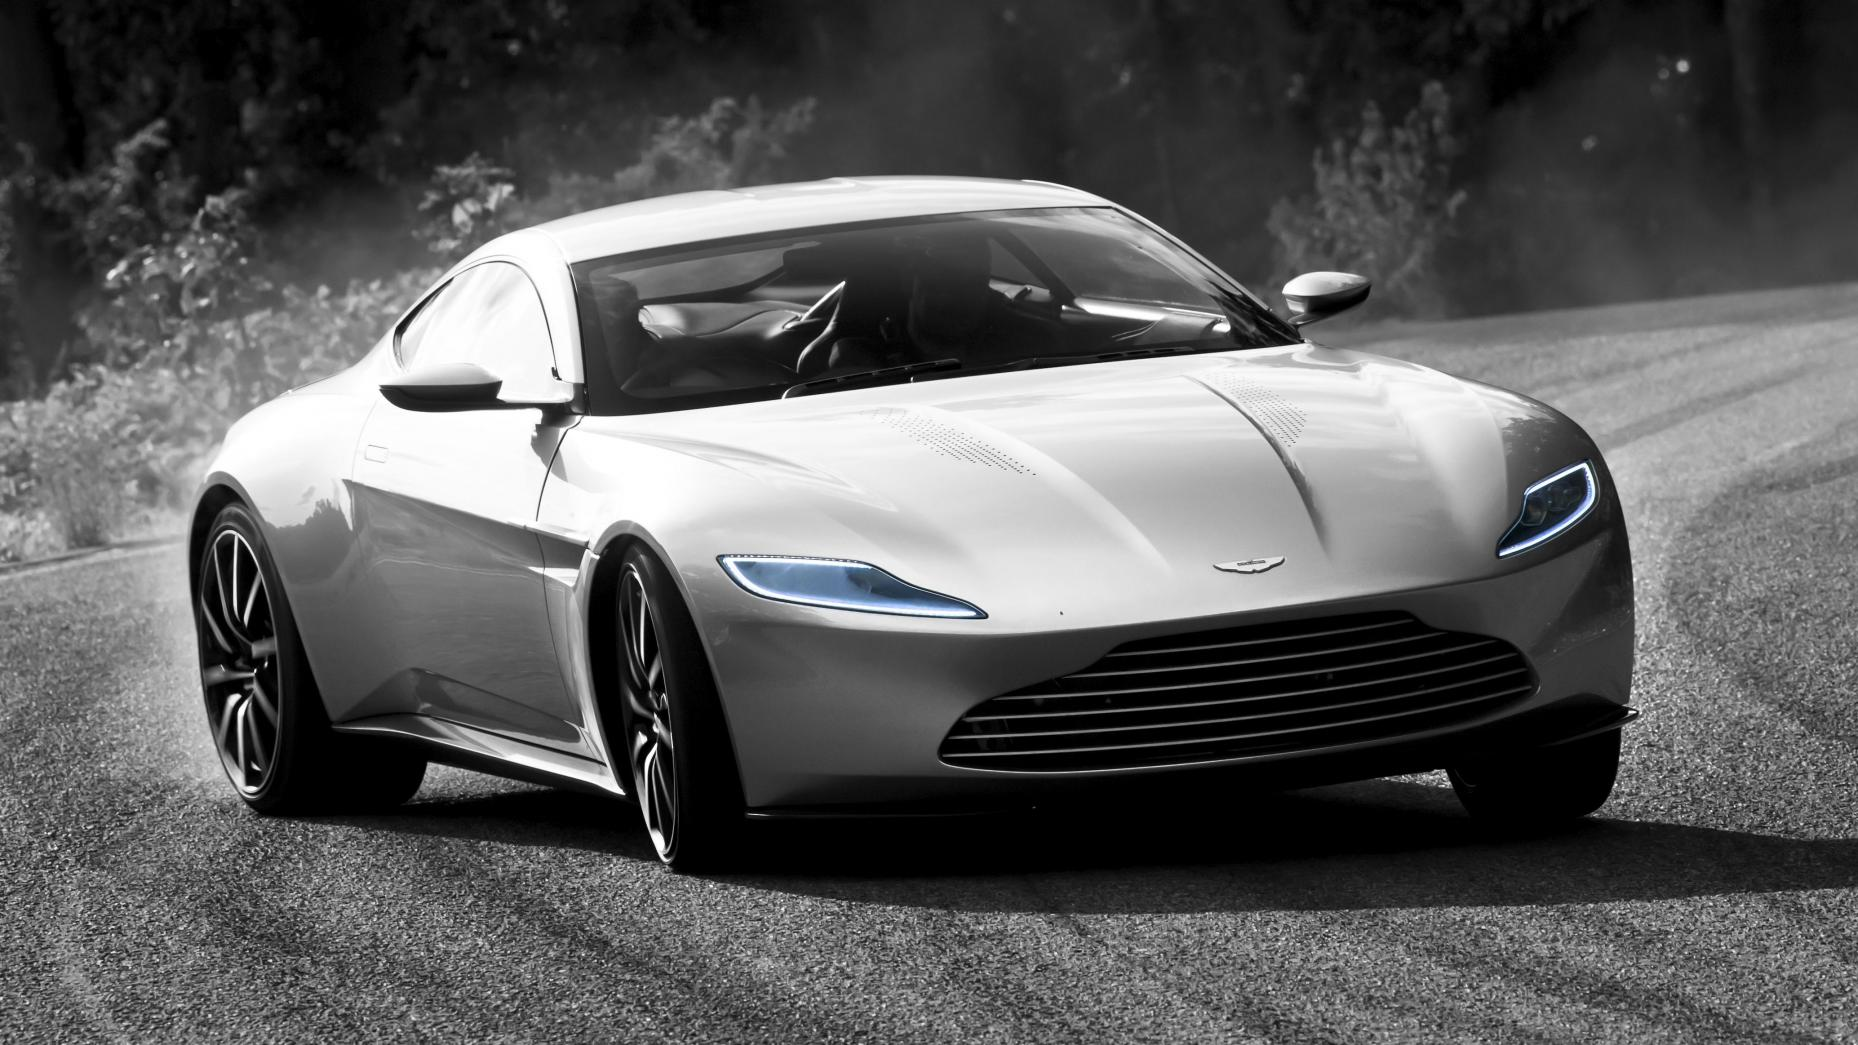 aston martin db10 price with New Trailer James Bonds Spectre Here And It Rocks on The New 2018 Aston Martin Vantage Revealed In Pictures in addition Jay Leno Goes Inside The Aston Martin Vault And Drives The Latest Bond Car as well New Trailer James Bonds Spectre Here And It Rocks besides New aston martin 2011 concept car veloce sweden further Bulletproof Driving James Bonds Aston Martin Db5 Dbs And Db10.